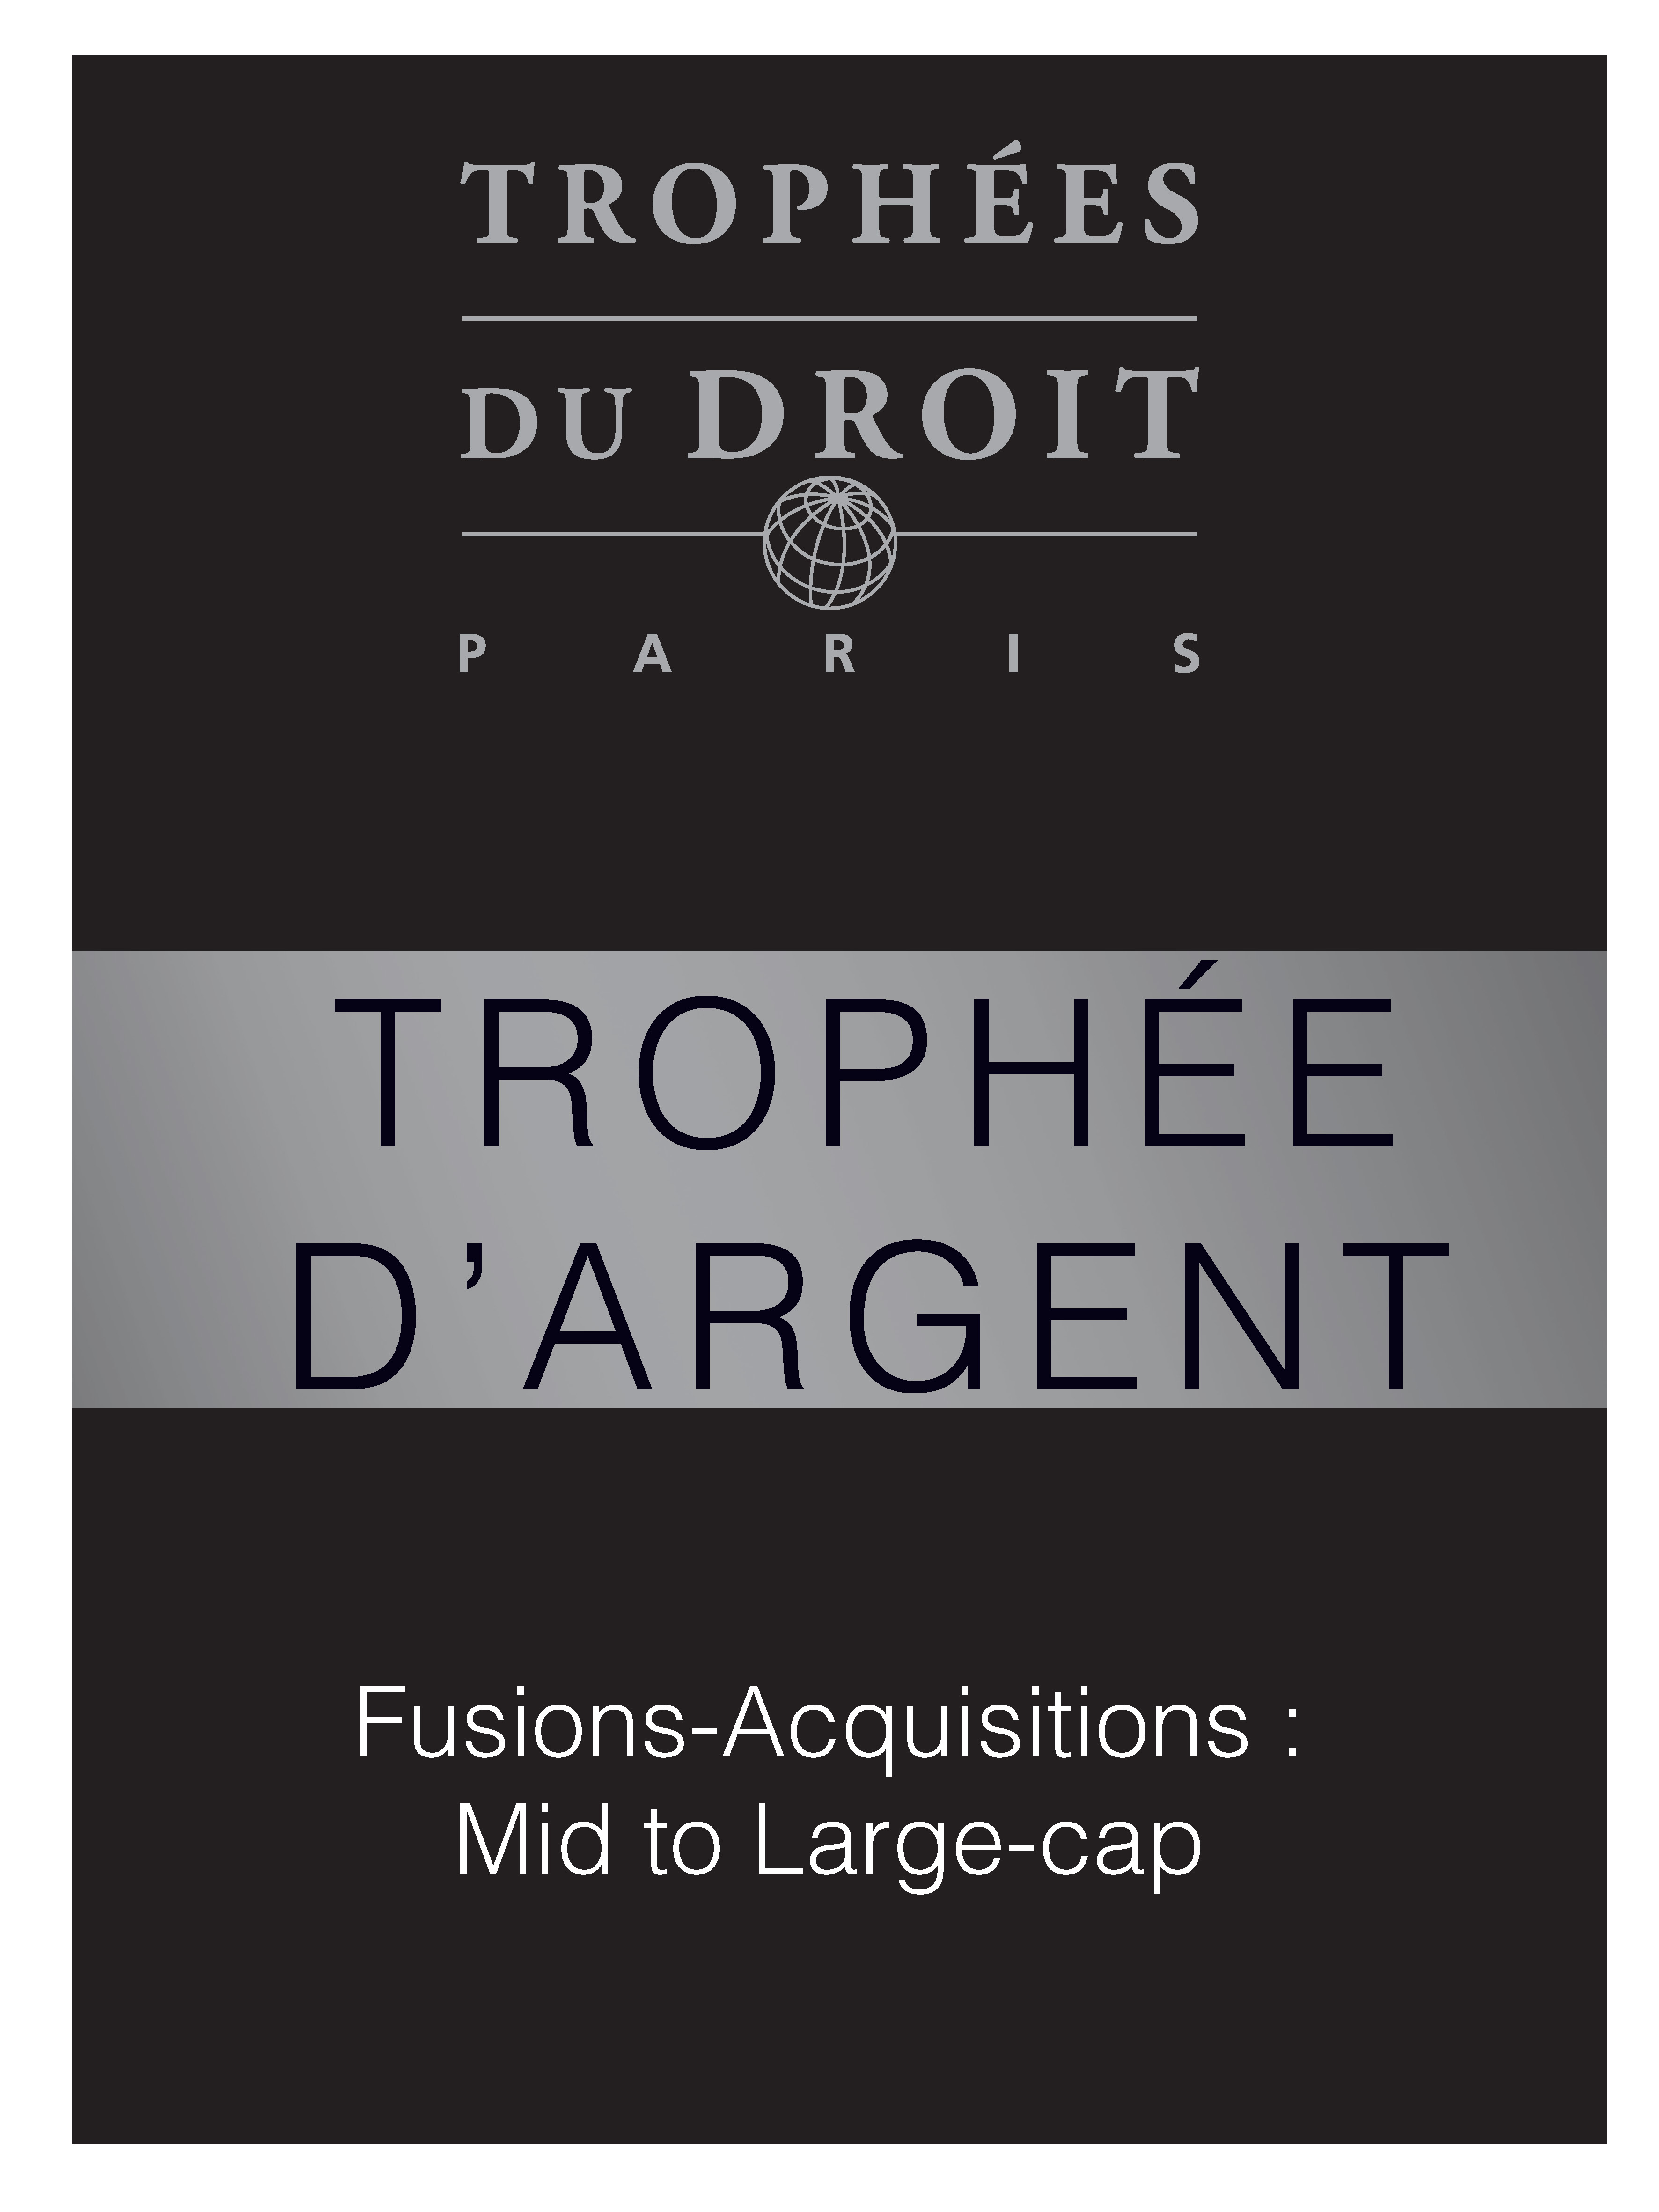 Fusions-Acquisitions_Mid_to_Large-cap